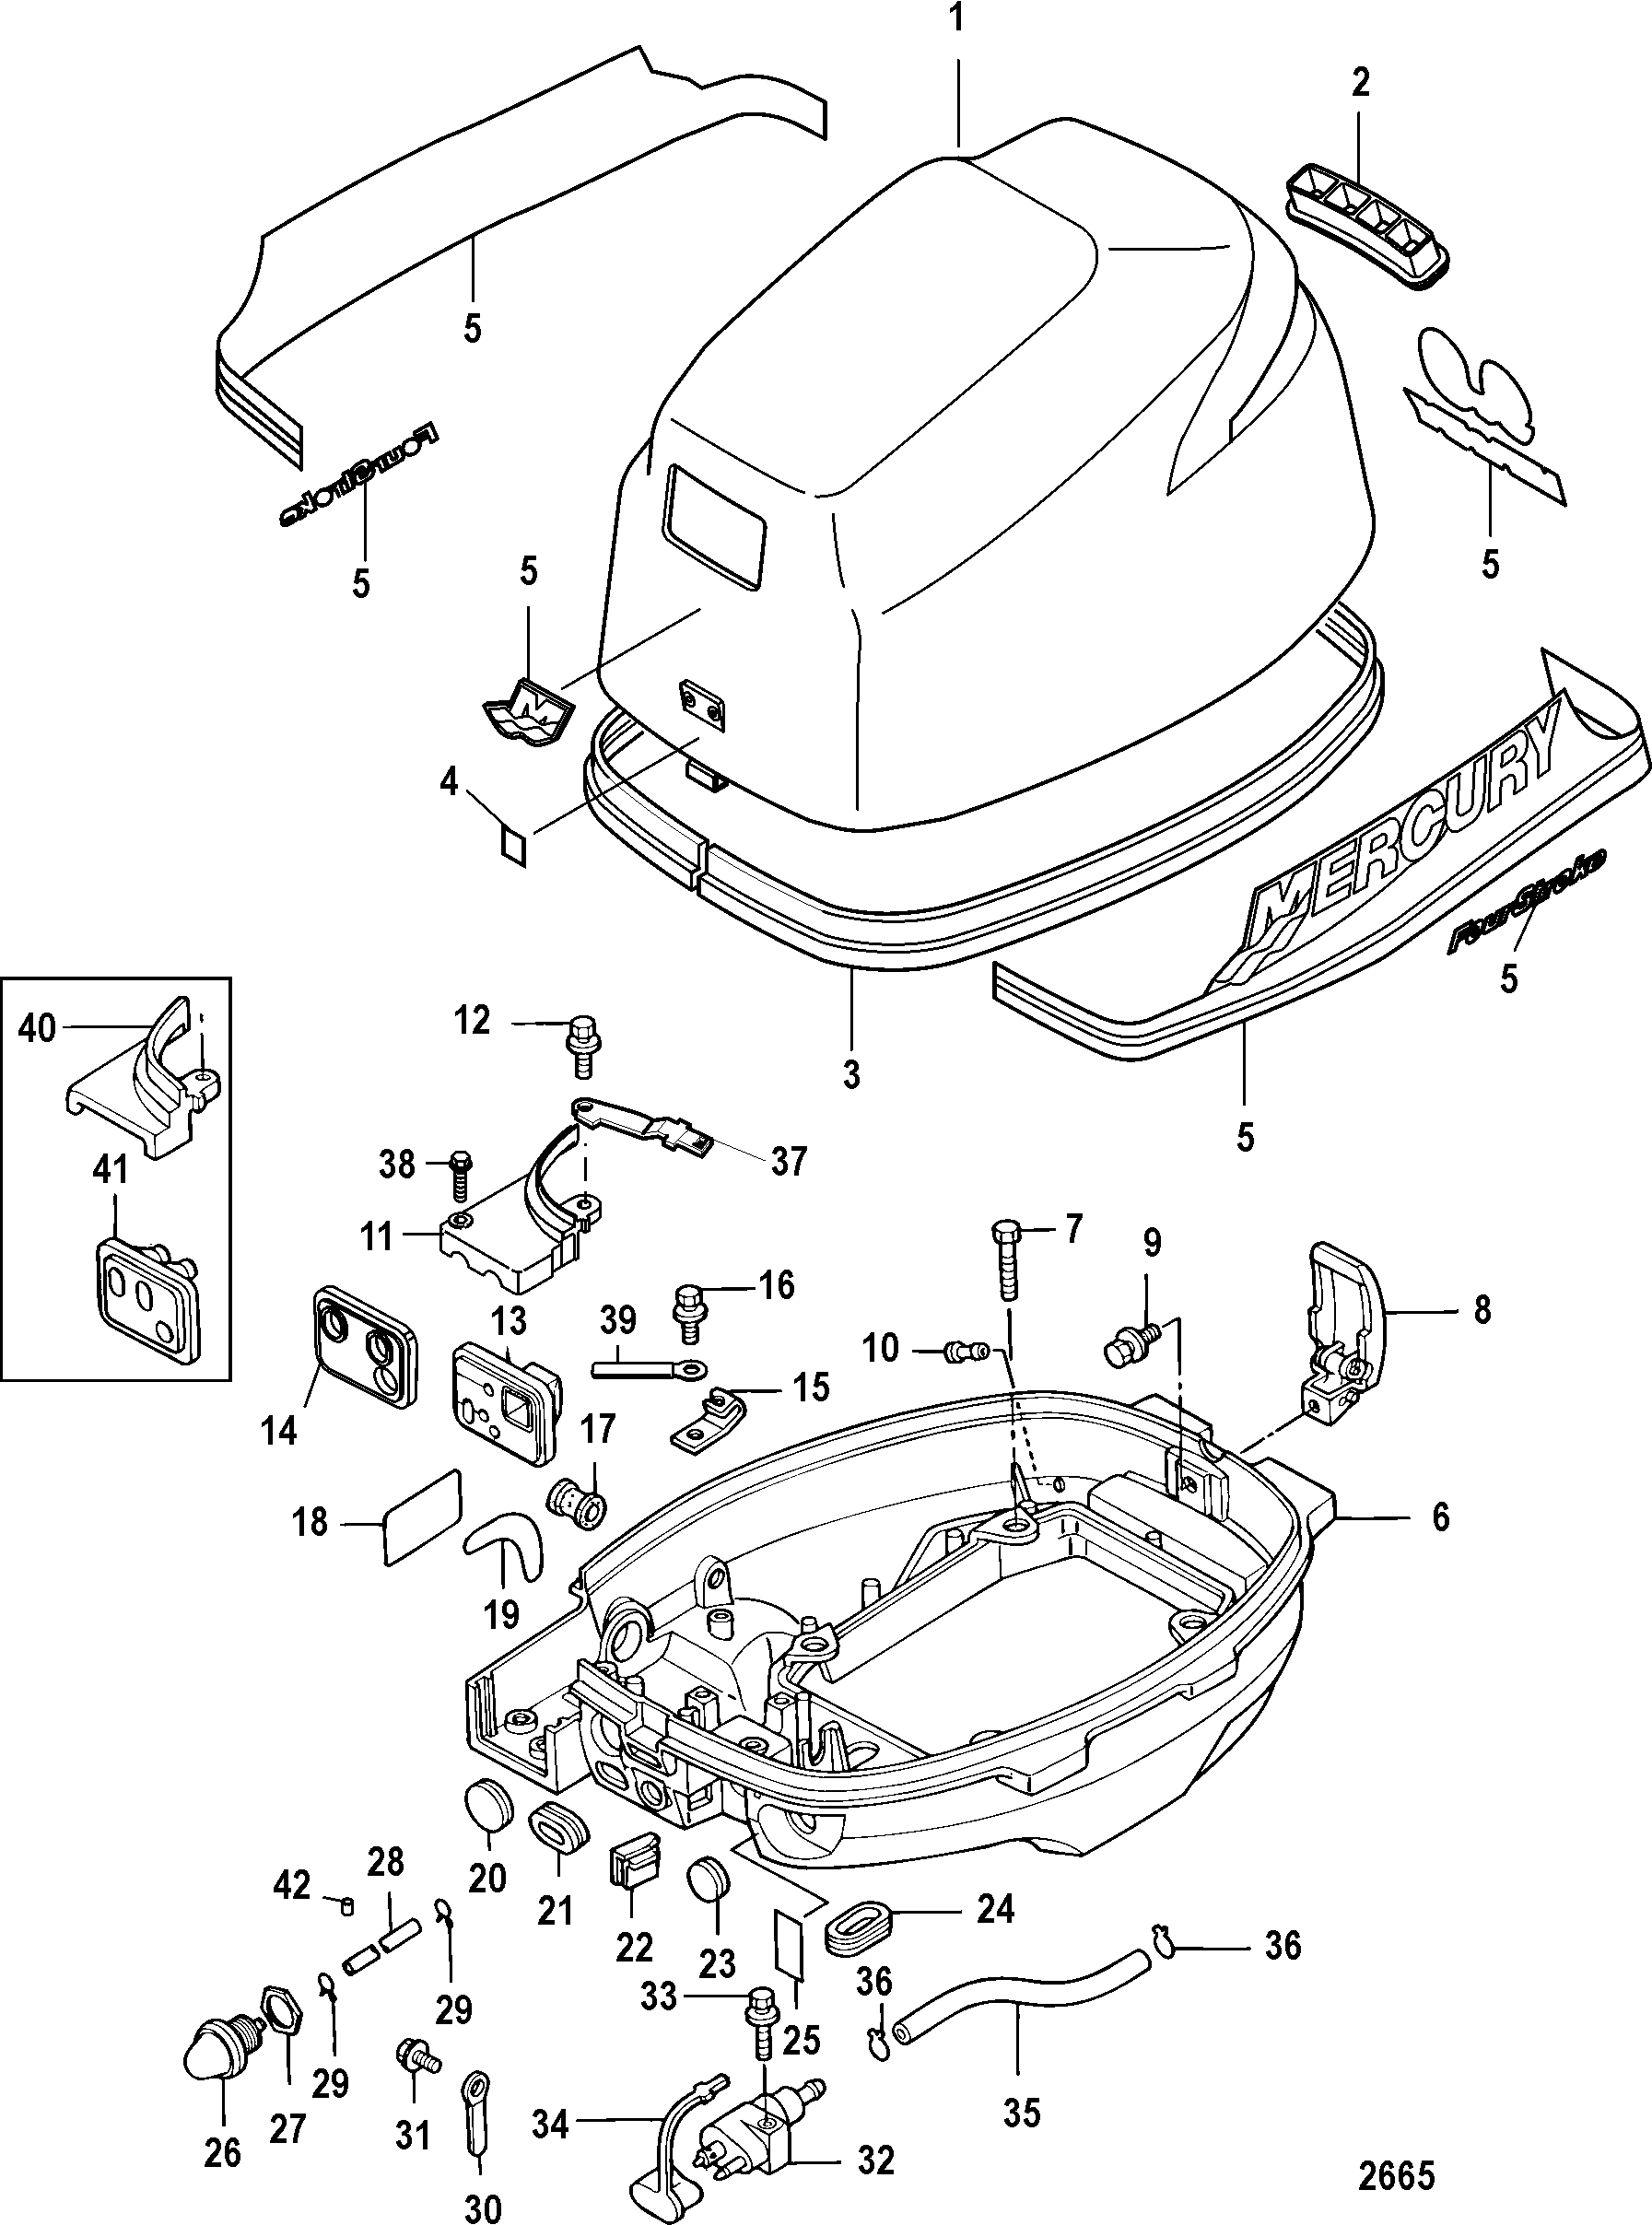 on 40 Hp Johnson Outboard Parts Diagram